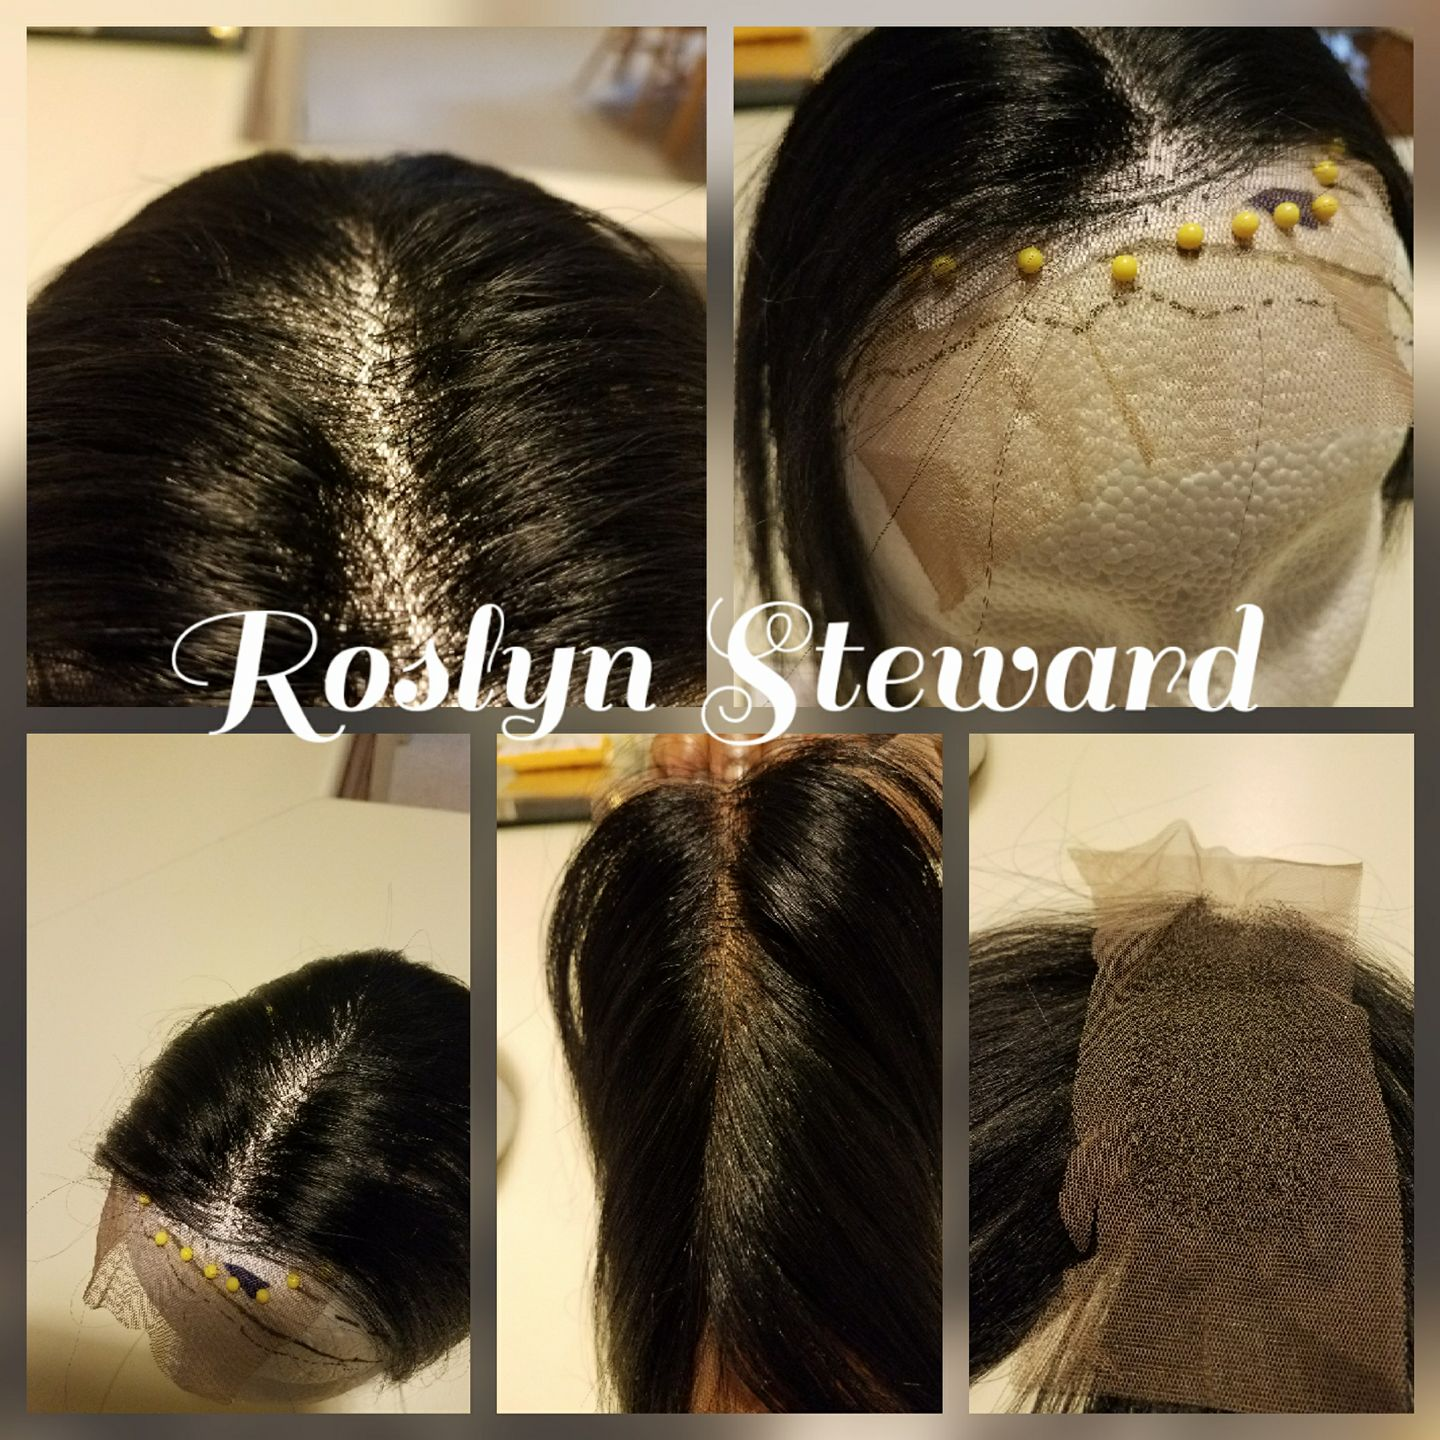 Custom hand-tied wig collage